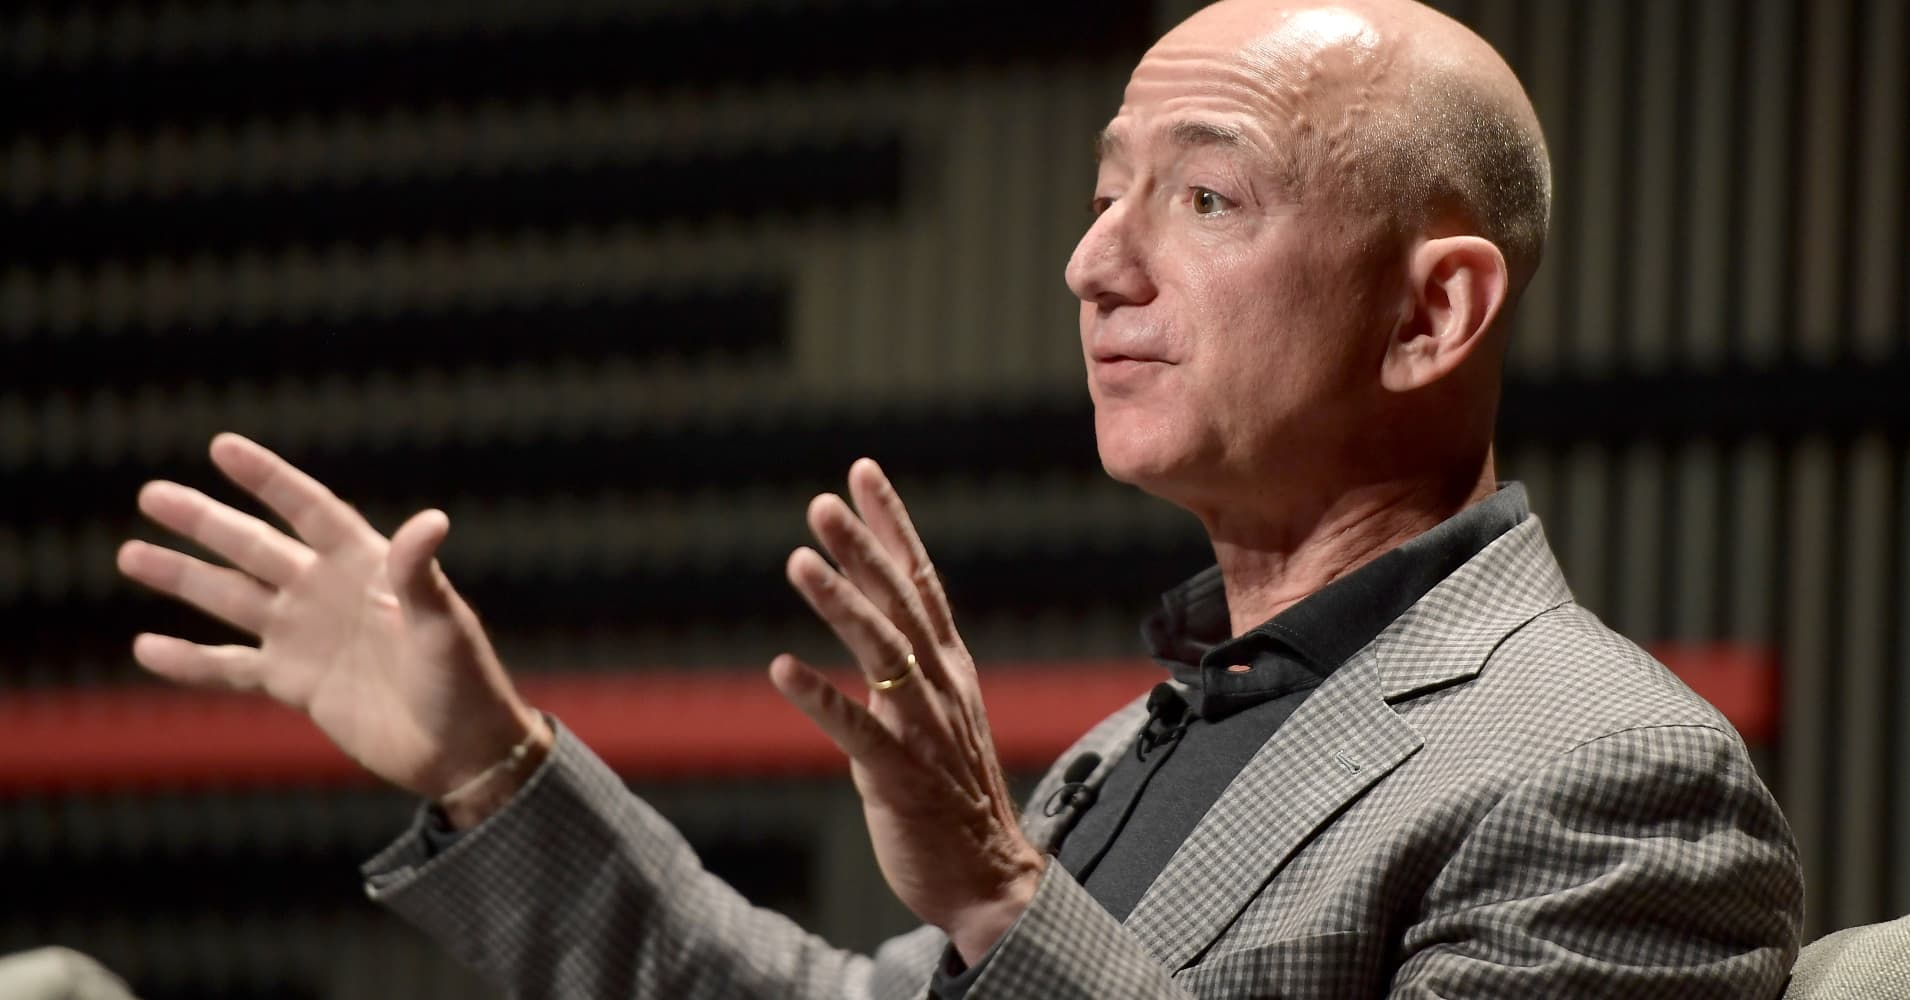 Jeff Bezos says tech's biggest problems don't have solutions yet, but 'we'll figure them out'